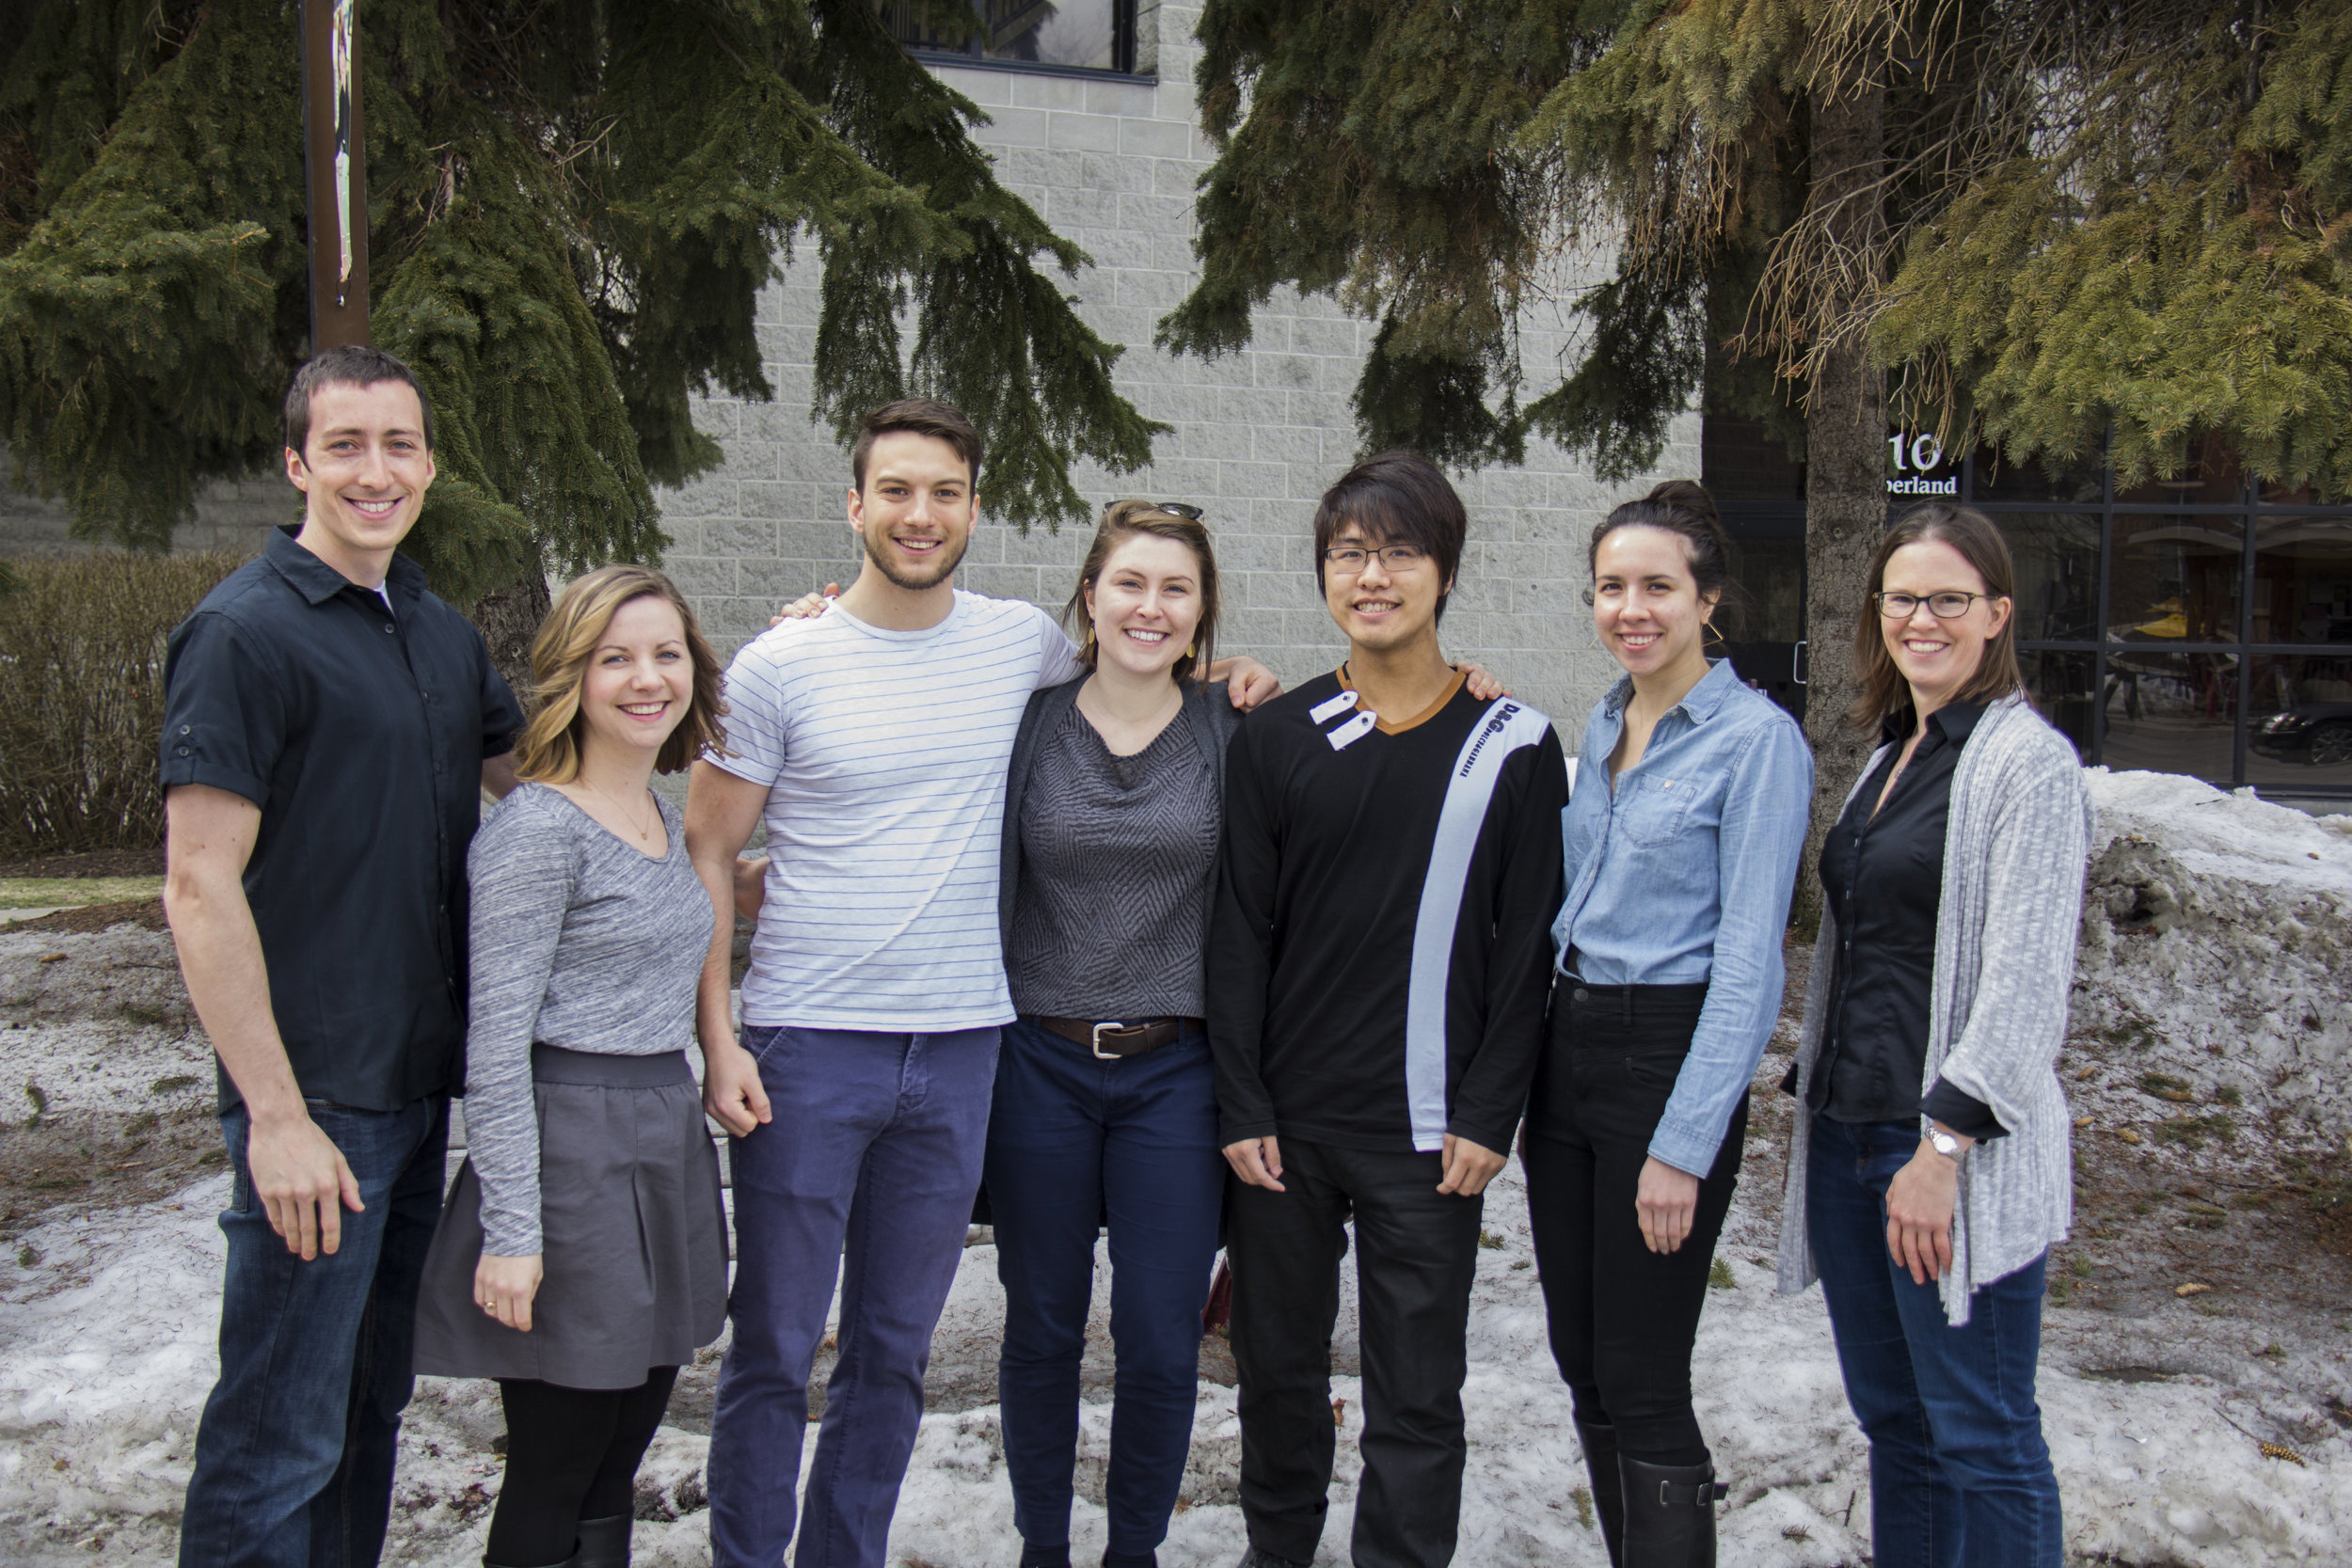 February 2017. Left to Right: Mark, Kelli, Nik, Amanda, Michael Min Way, Rebecca, and Alison. Photo credit: Marc Bélanger